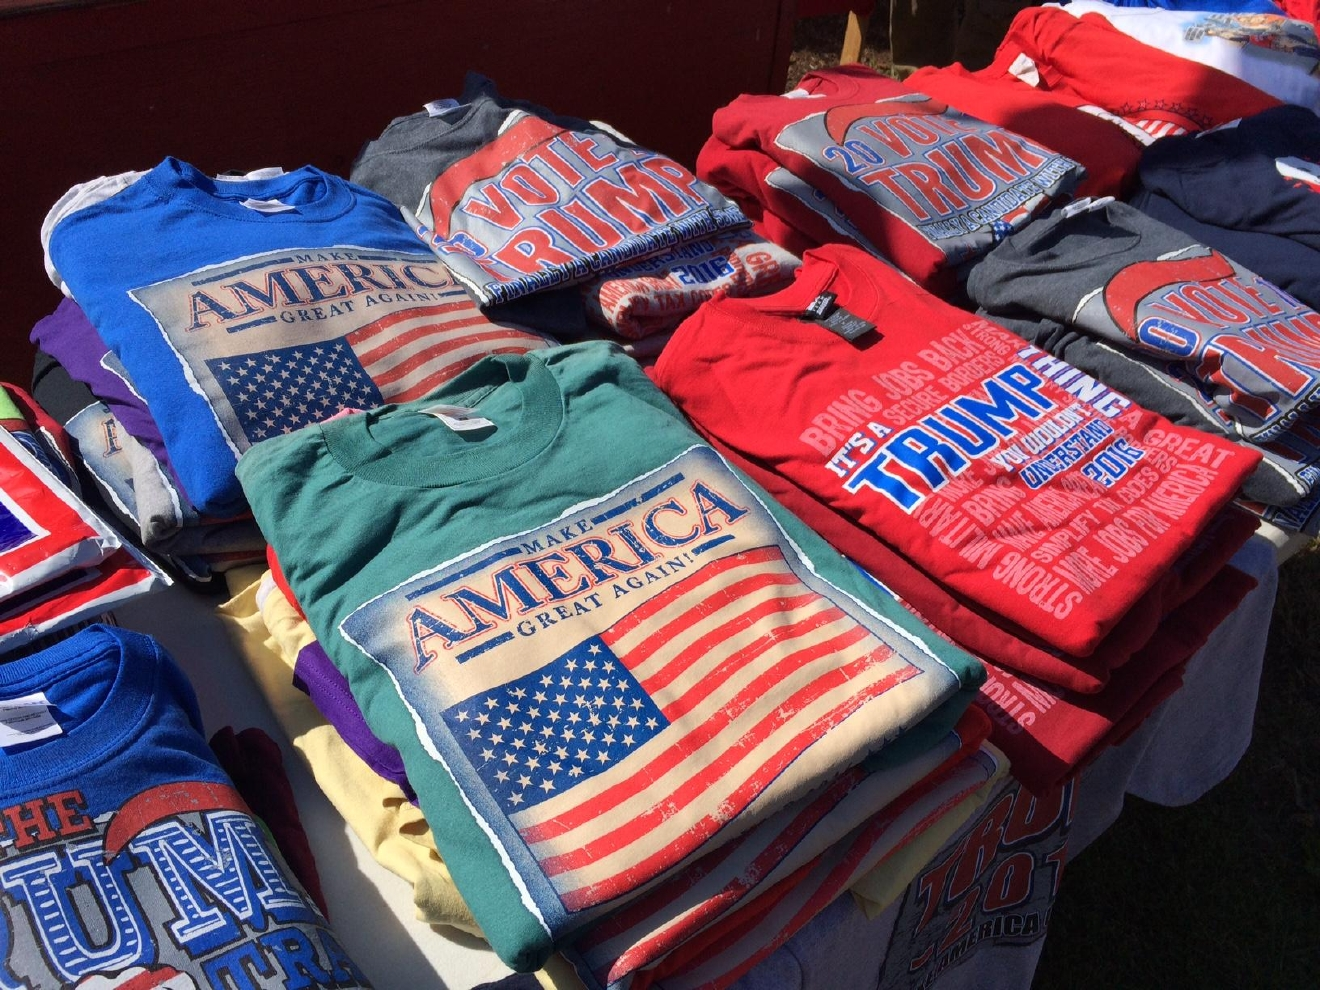 They hawked shirts, hats, buttons and more- all pro-Trump. All of the vendors we spoke with said they weren't just doing it for the money- they were supporting Donald Trump in his candidacy, and hoping they might be able to change the minds of some Lane County residents. (SBG photo)